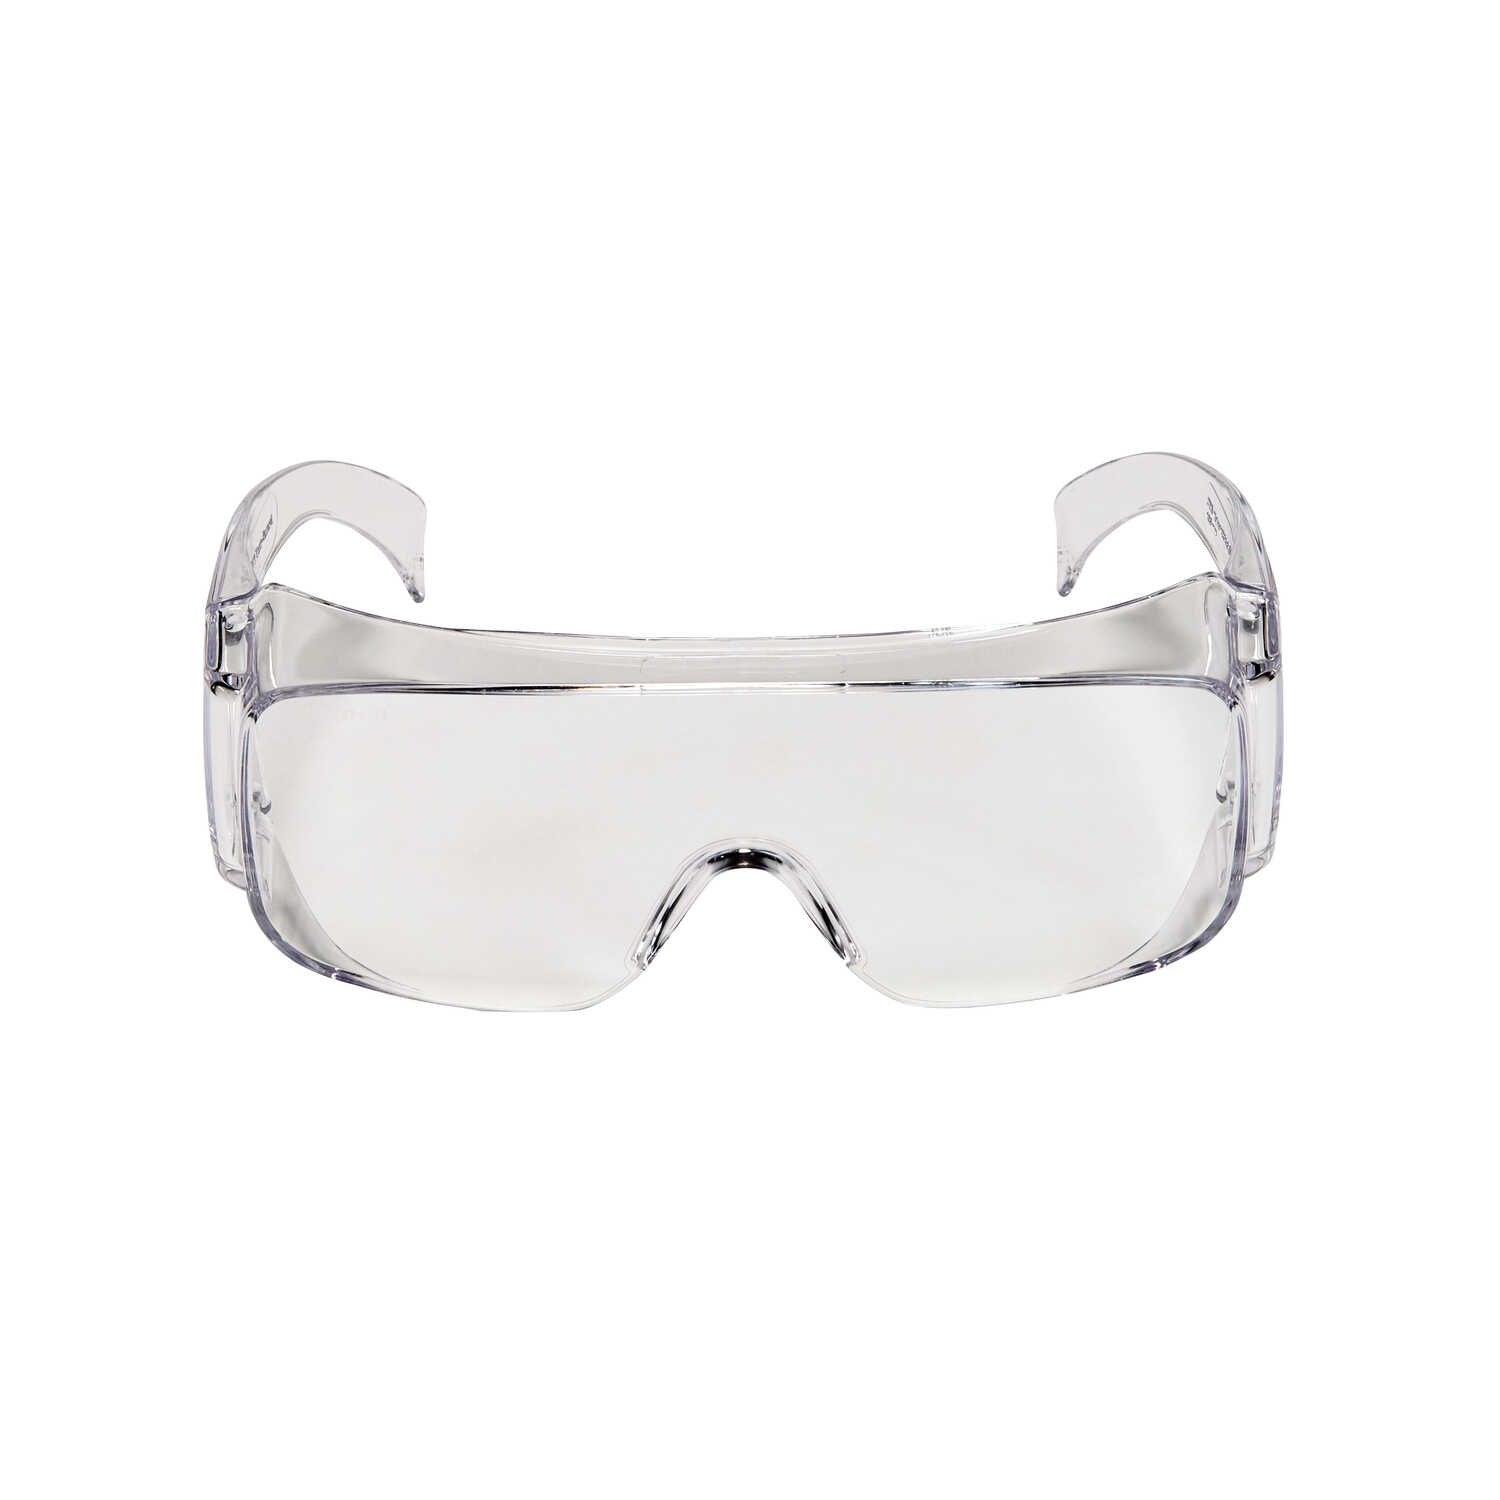 3M  Clear Frame 1 pk Clear Lens Safety Glasses